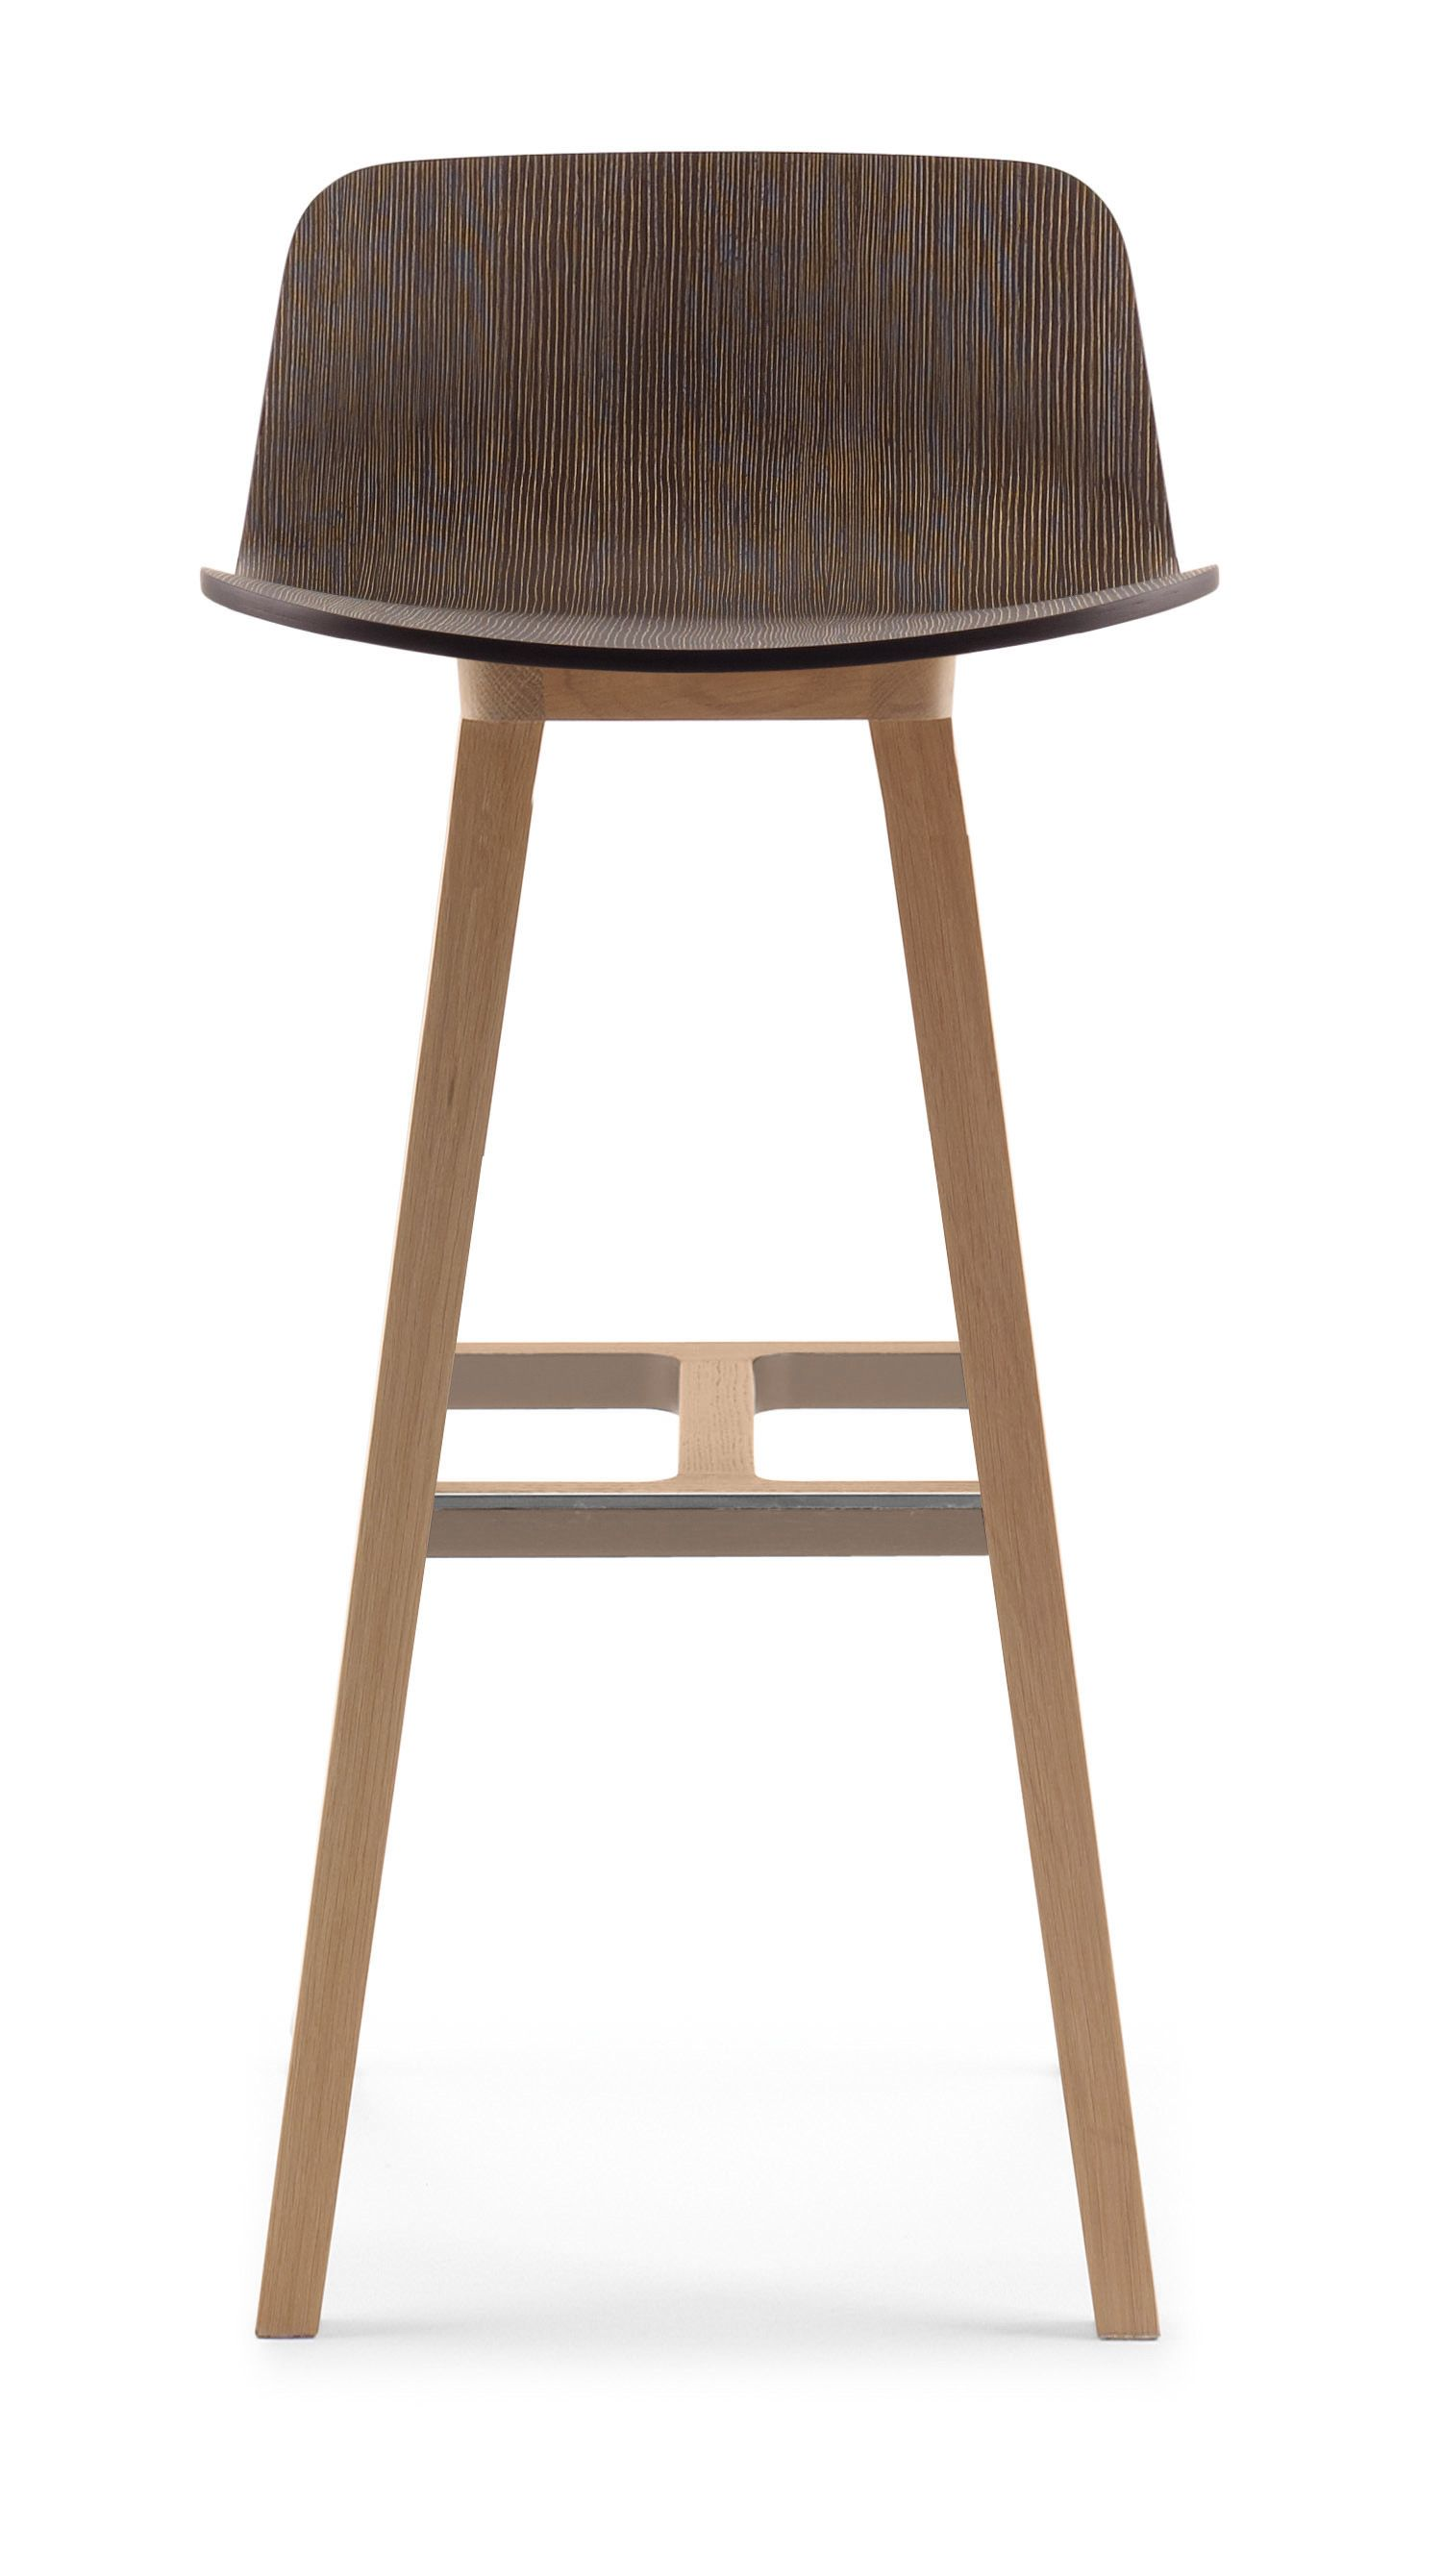 Bouchon Counter Stool Kuskoa Barstool Stool Hocker Tabouret Design Jean